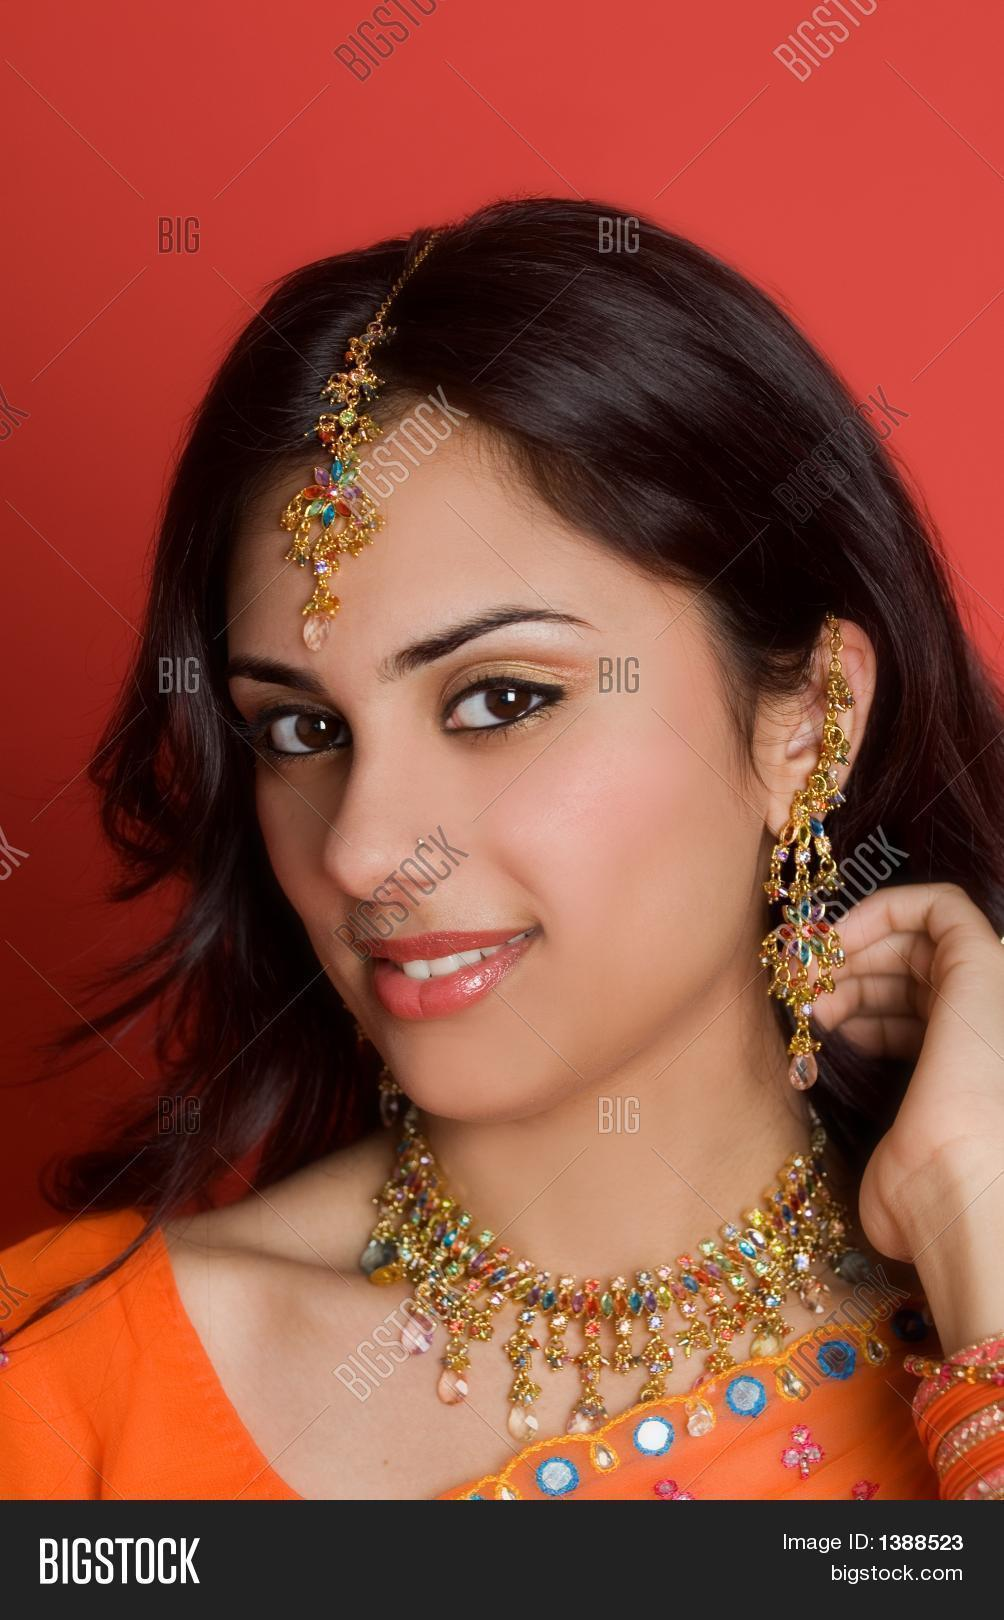 hindu single women in copeville Copeville's best 100% free online dating site meet loads of available single women in copeville with mingle2's copeville dating services find a girlfriend or lover in copeville, or just have fun flirting online with copeville single girls.